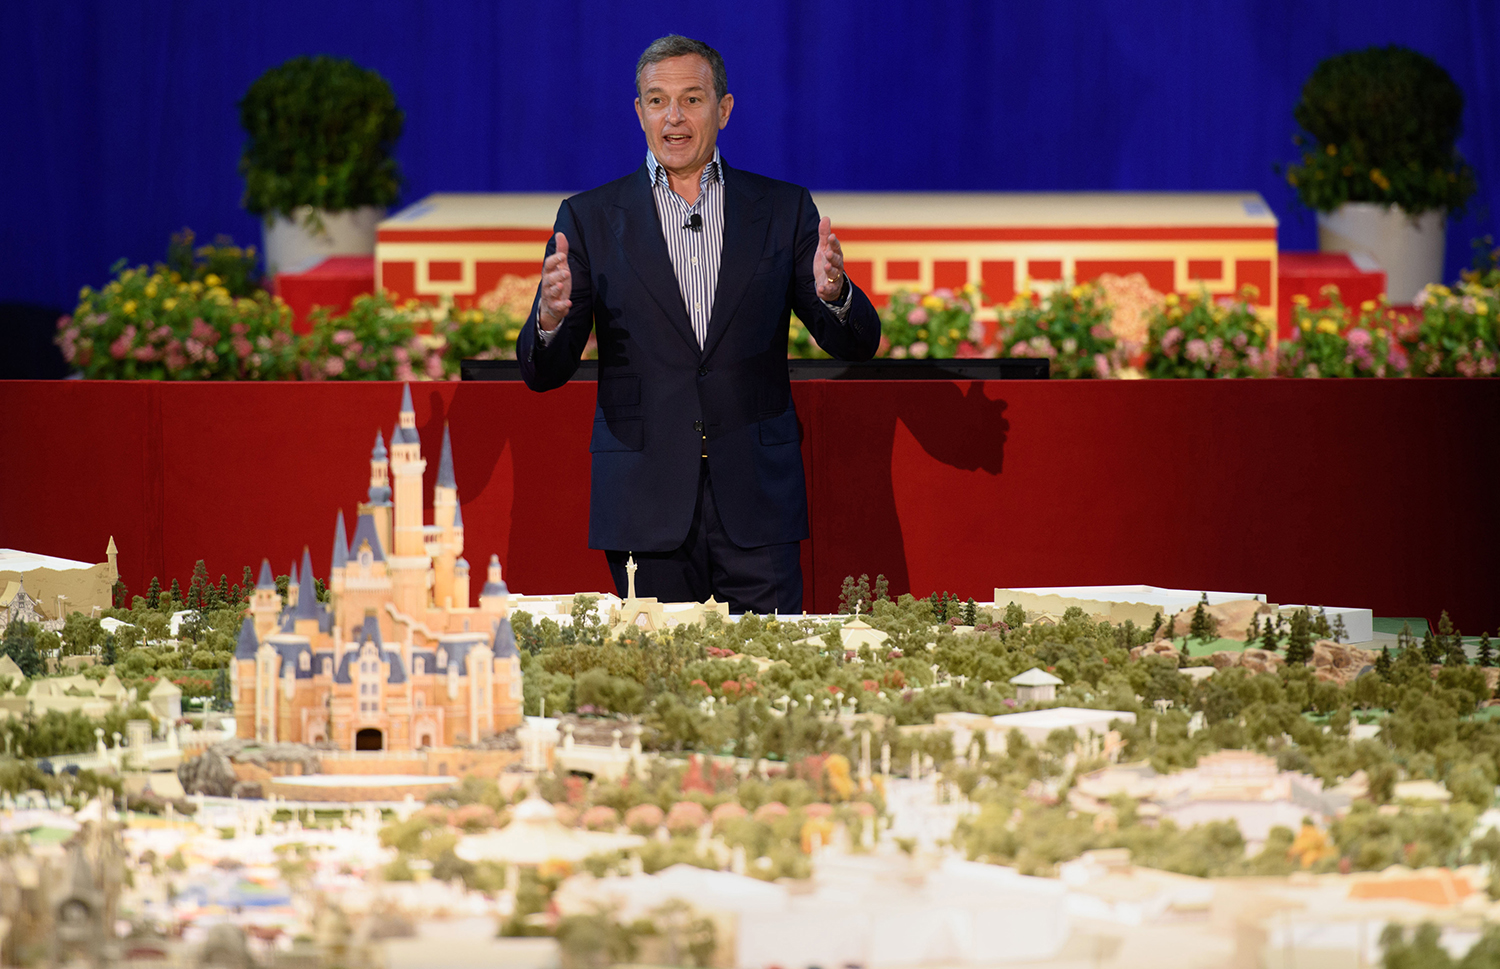 Walt Disney Company chairman and CEO Bob Iger speaks in front of a model of the new Shanghai Disney Resort during a press event in Shanghai on July 15, 2015. US entertainment giant Disney gave the first detailed preview to the media for its planned theme park in Shanghai, promising Chinese features and new attractions unlike its five other resorts, executives said. AFP PHOTO / JOHANNES EISELE.